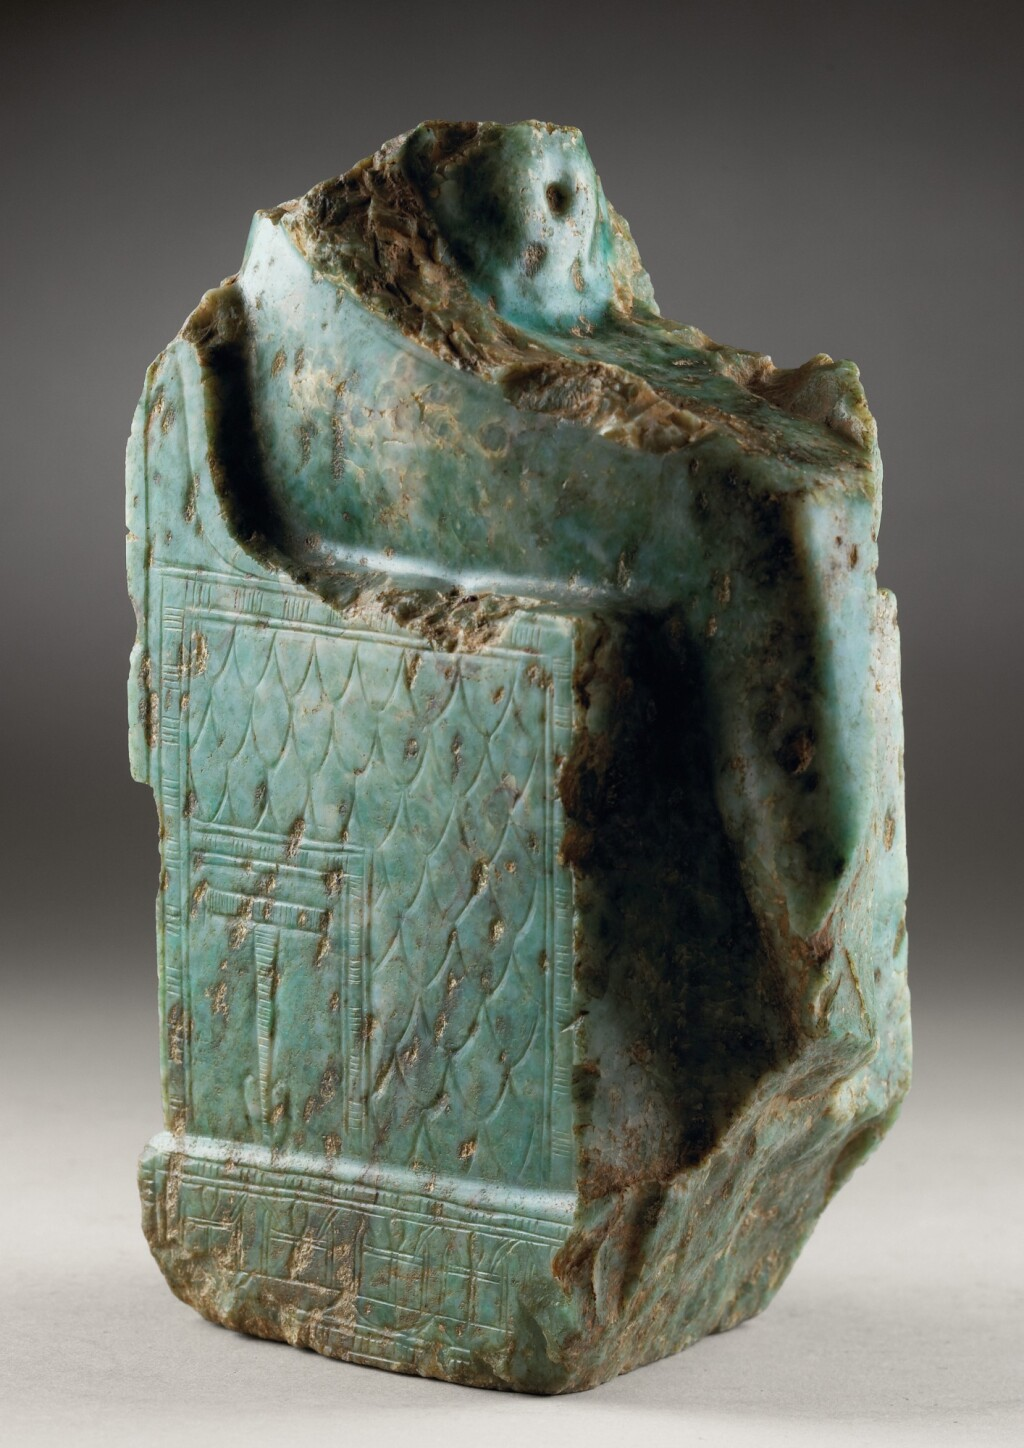 A FRAGMENTARY EGYPTIAN MAGNESITE MARBLE FIGURE OF A ISIS, 26TH/30TH DYNASTY, 664-342 B.C.